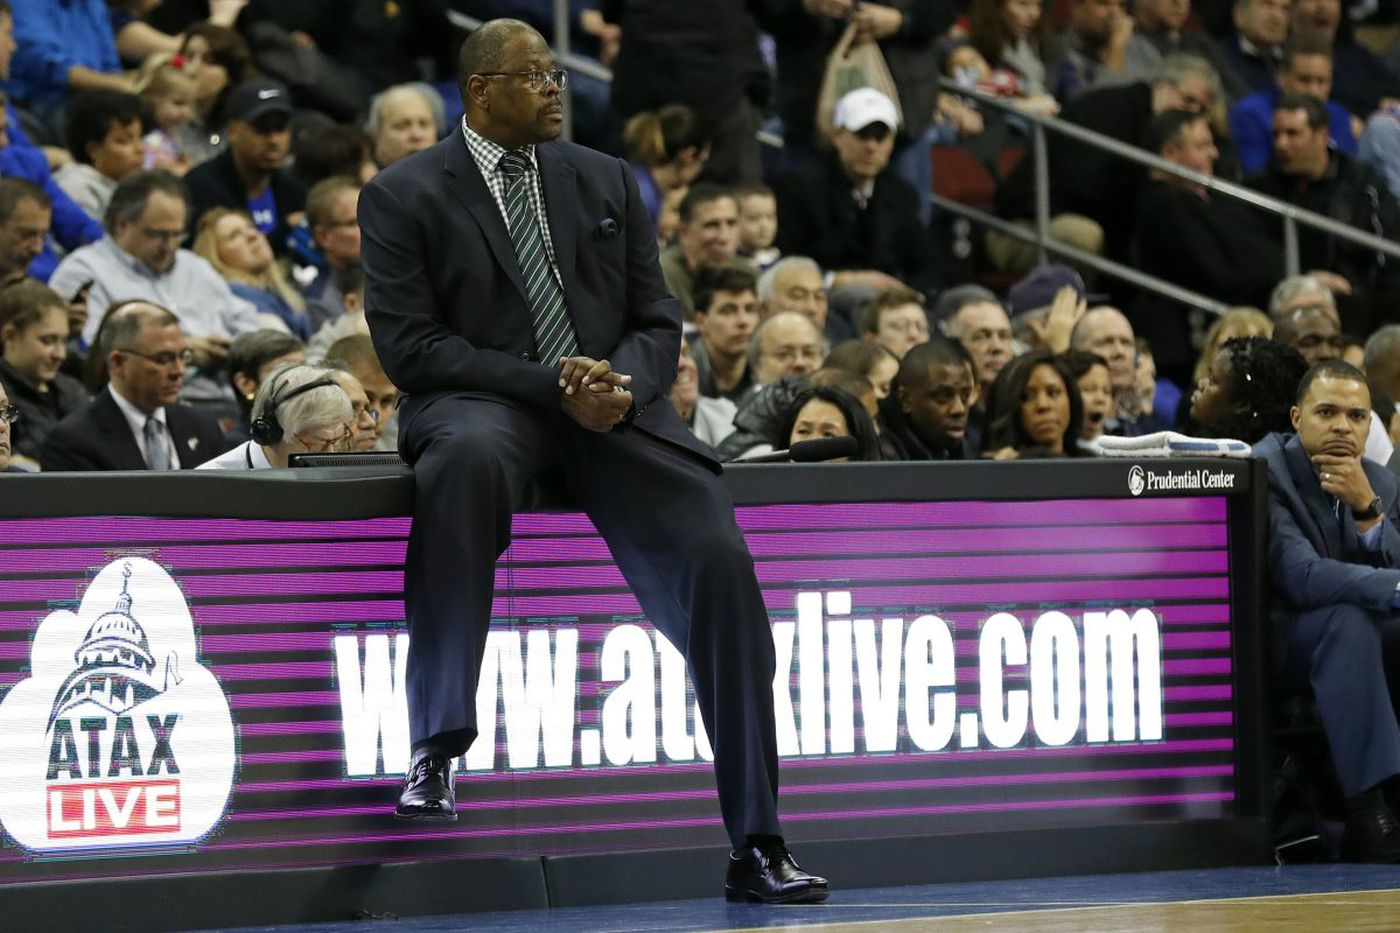 Villanova-Georgetown: Wildcats visit Patrick Ewing and an old Big East rival